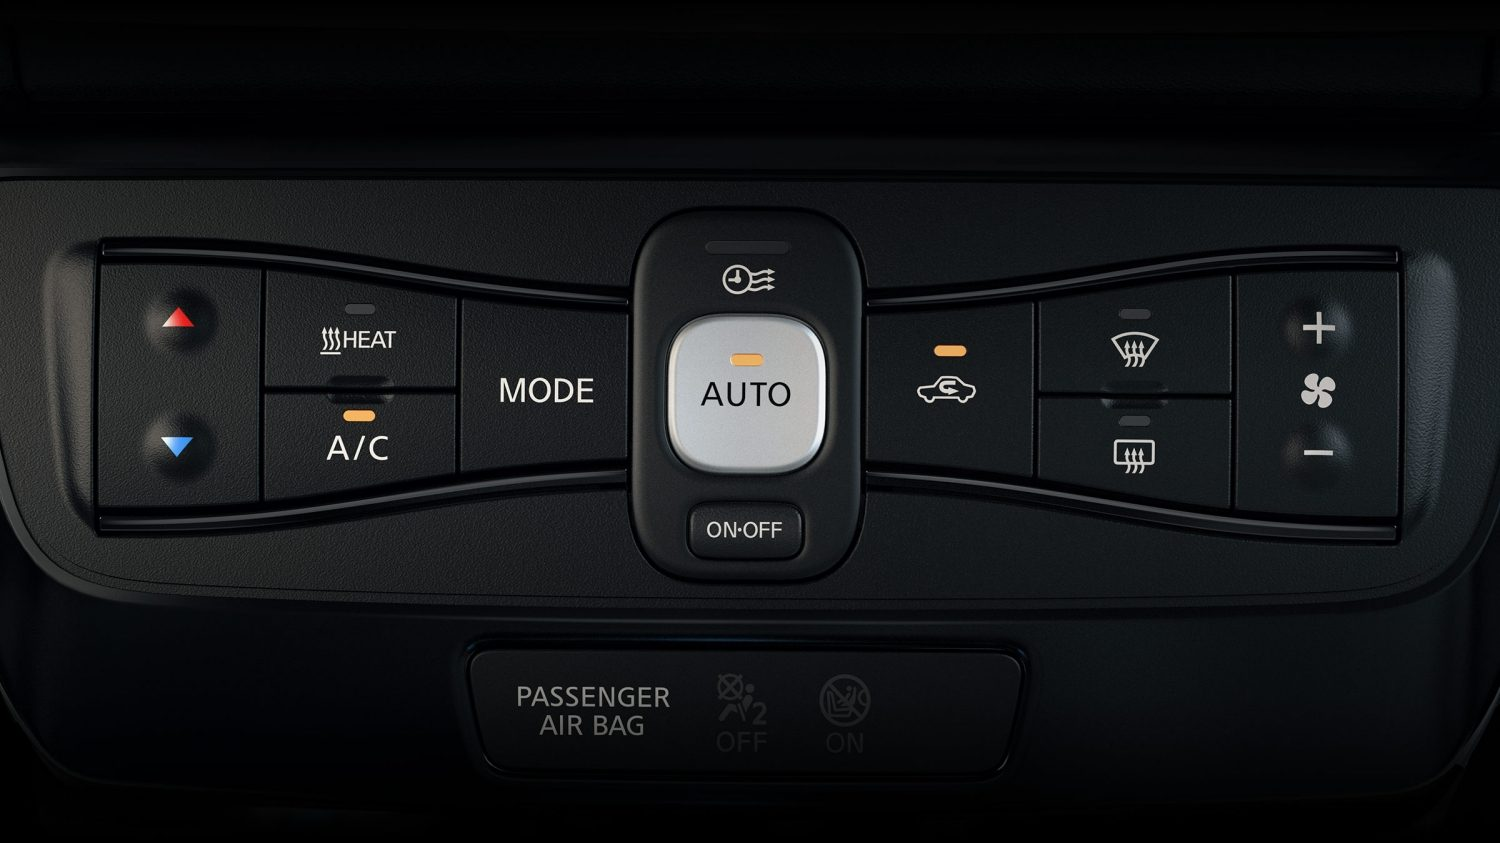 Nissan LEAF automatic climate control system